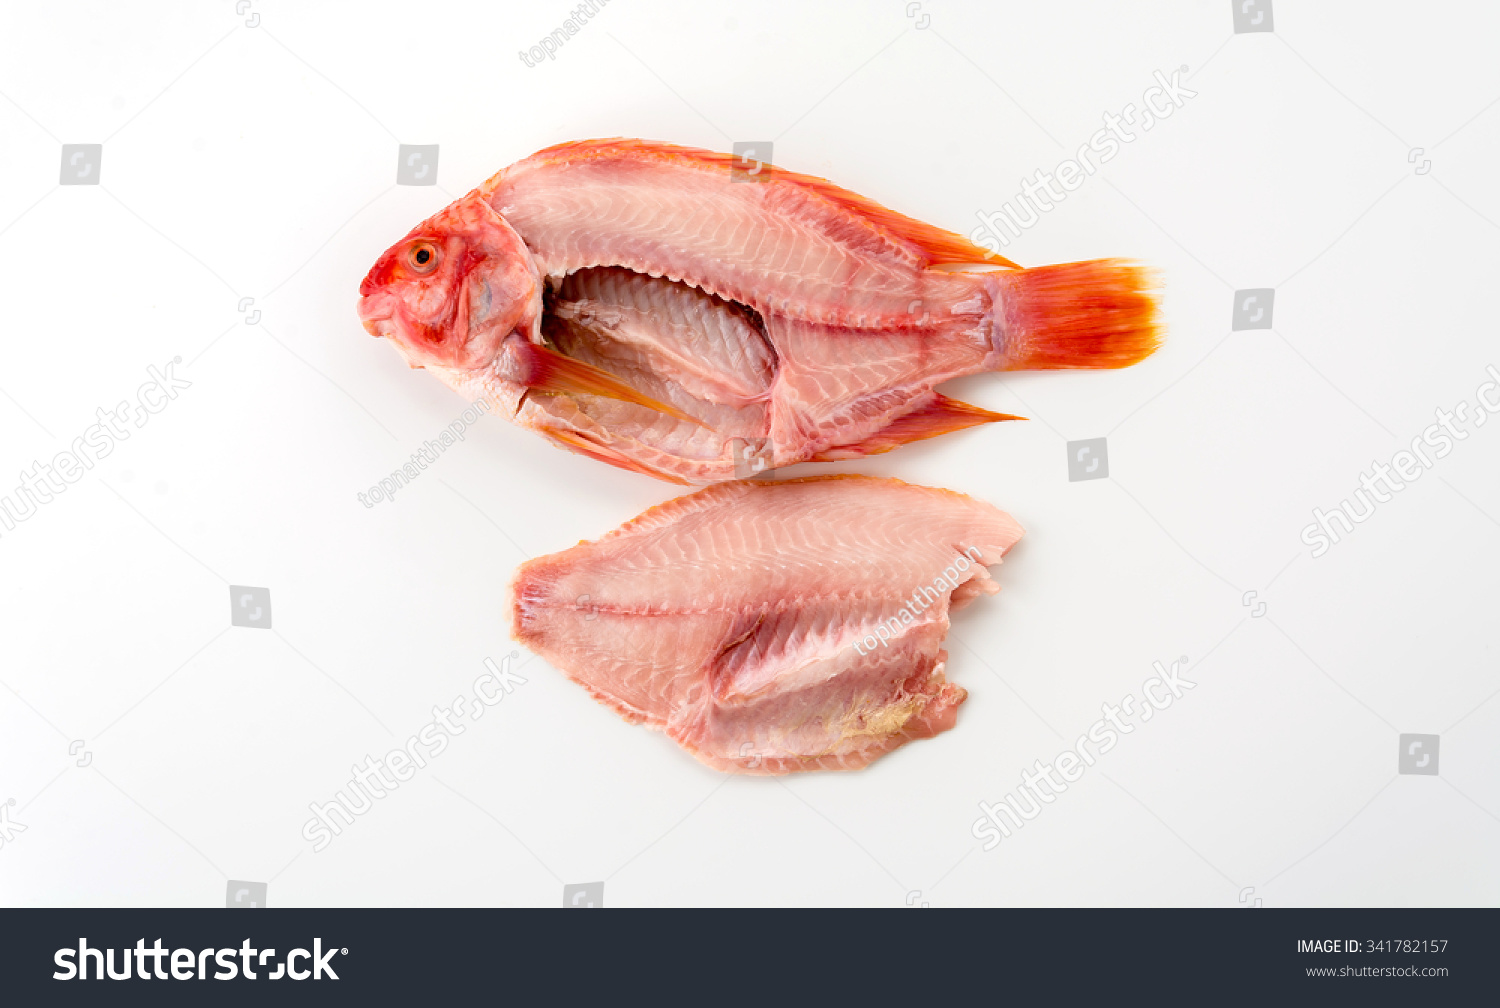 tilapia raw on white background #341782157